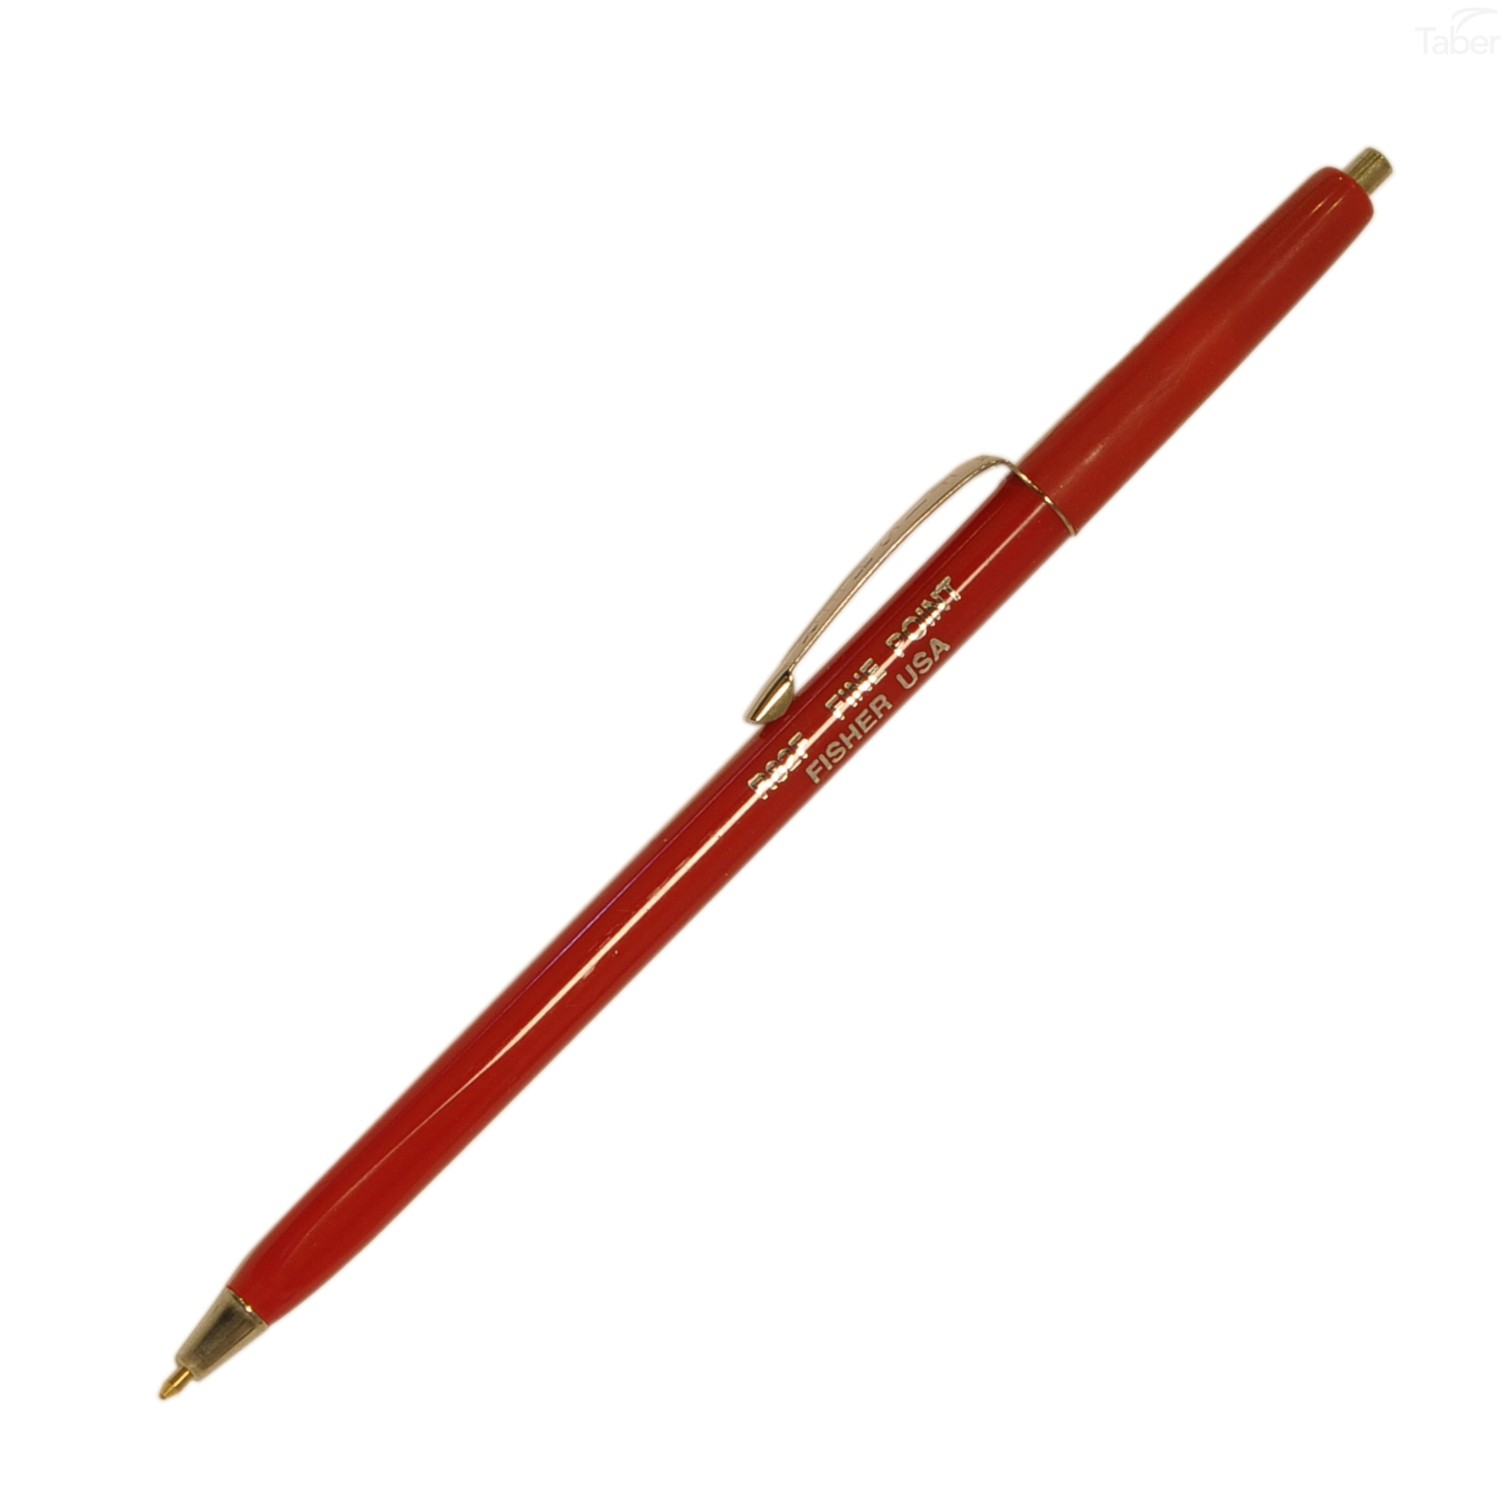 Fisher Rocket Space Pen, Non-Pressurized Red, Fine